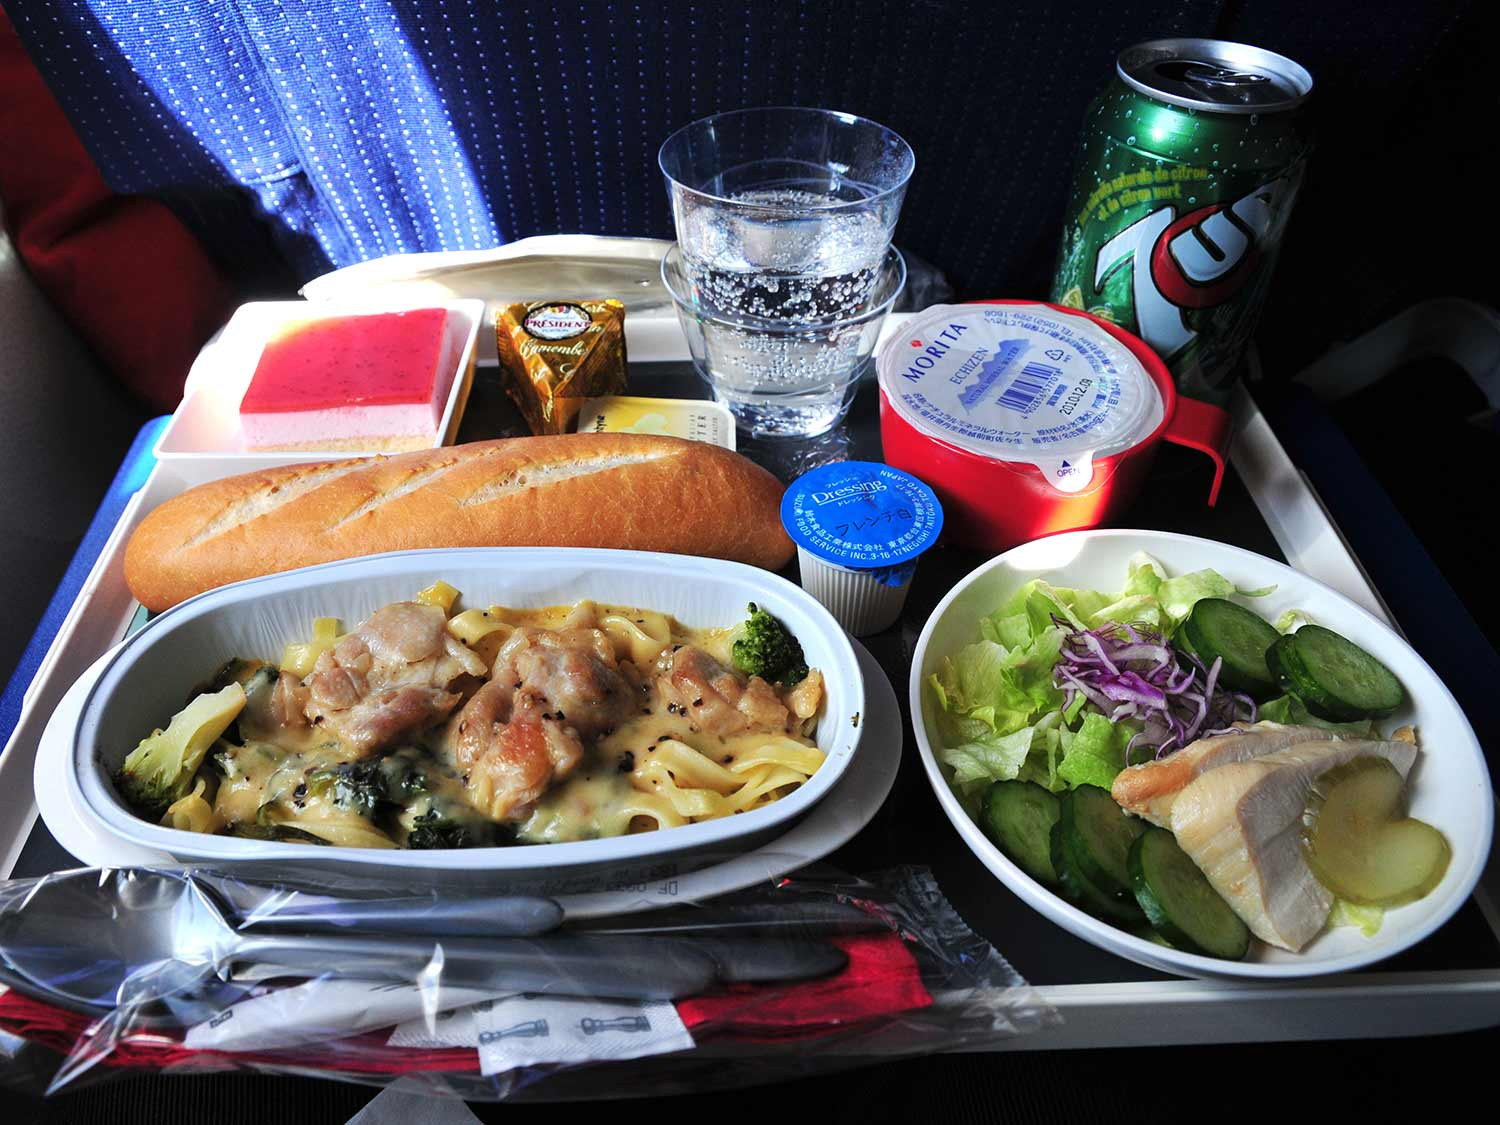 Airlines Are Turning to Gourmet Techniques to Improve In-Flight Meals